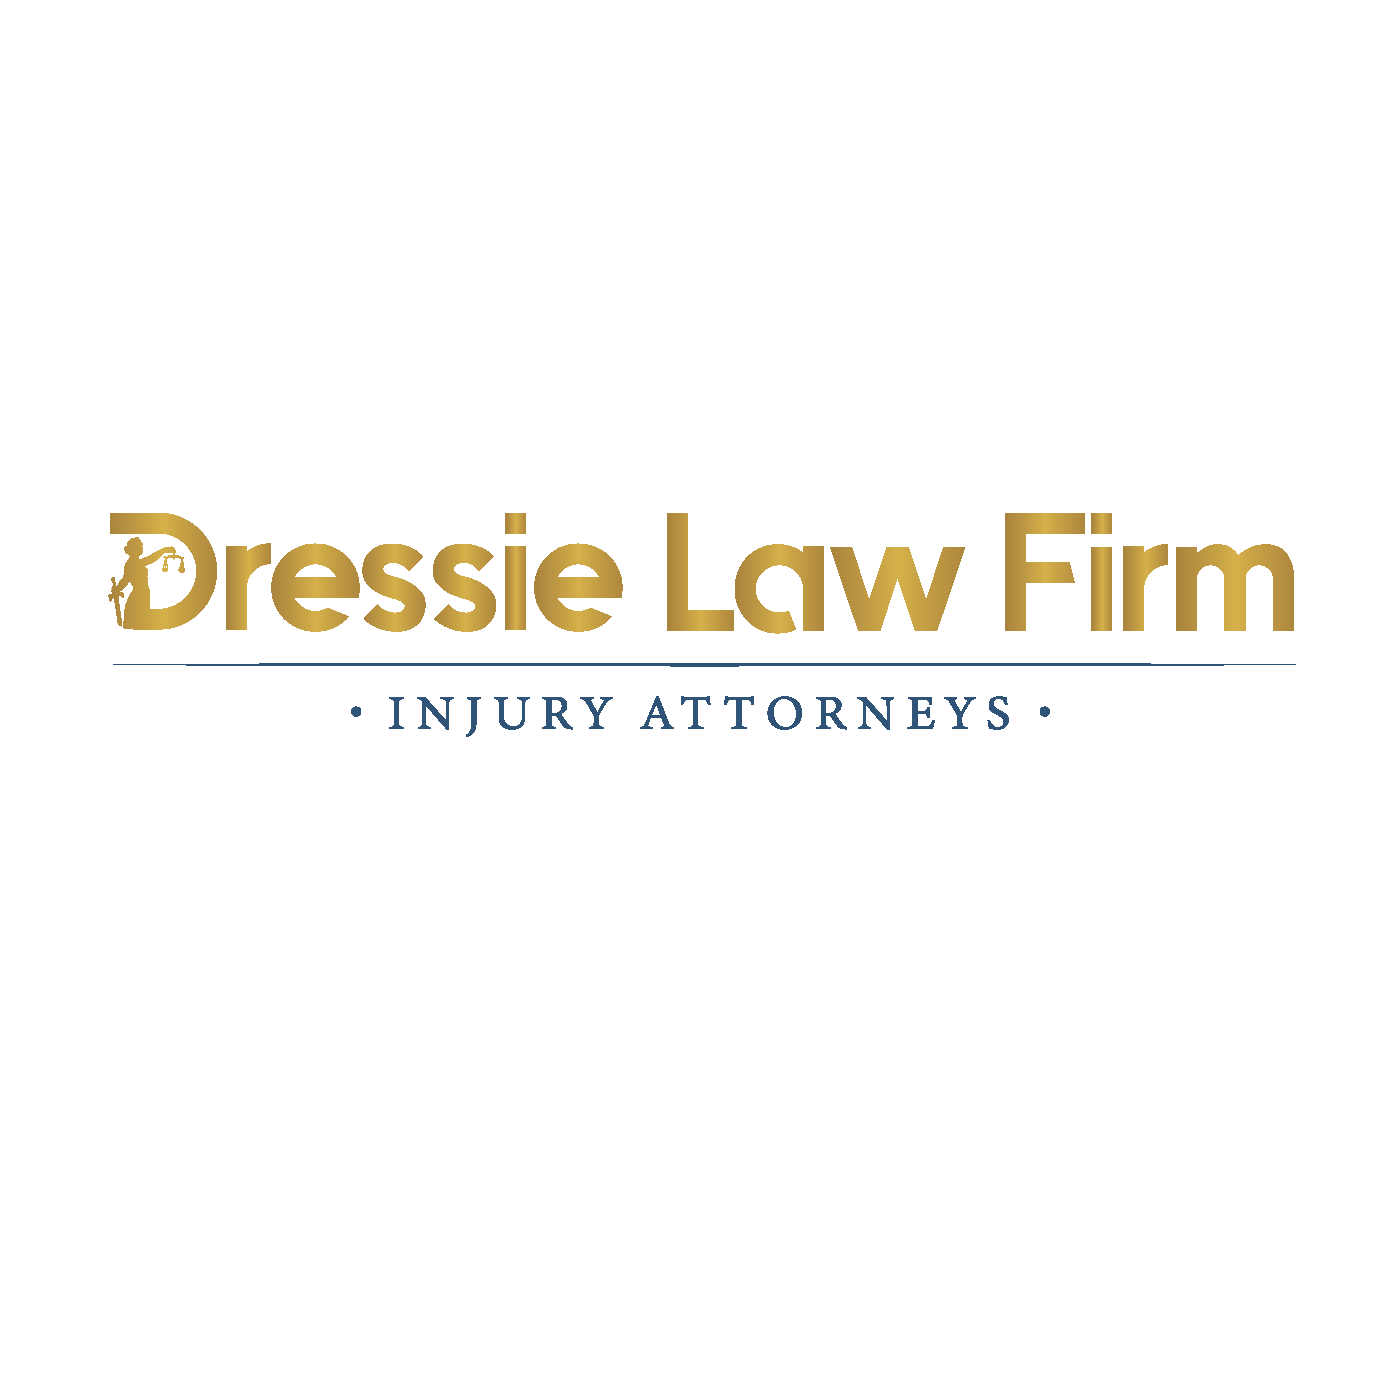 The Dressie Law Firm